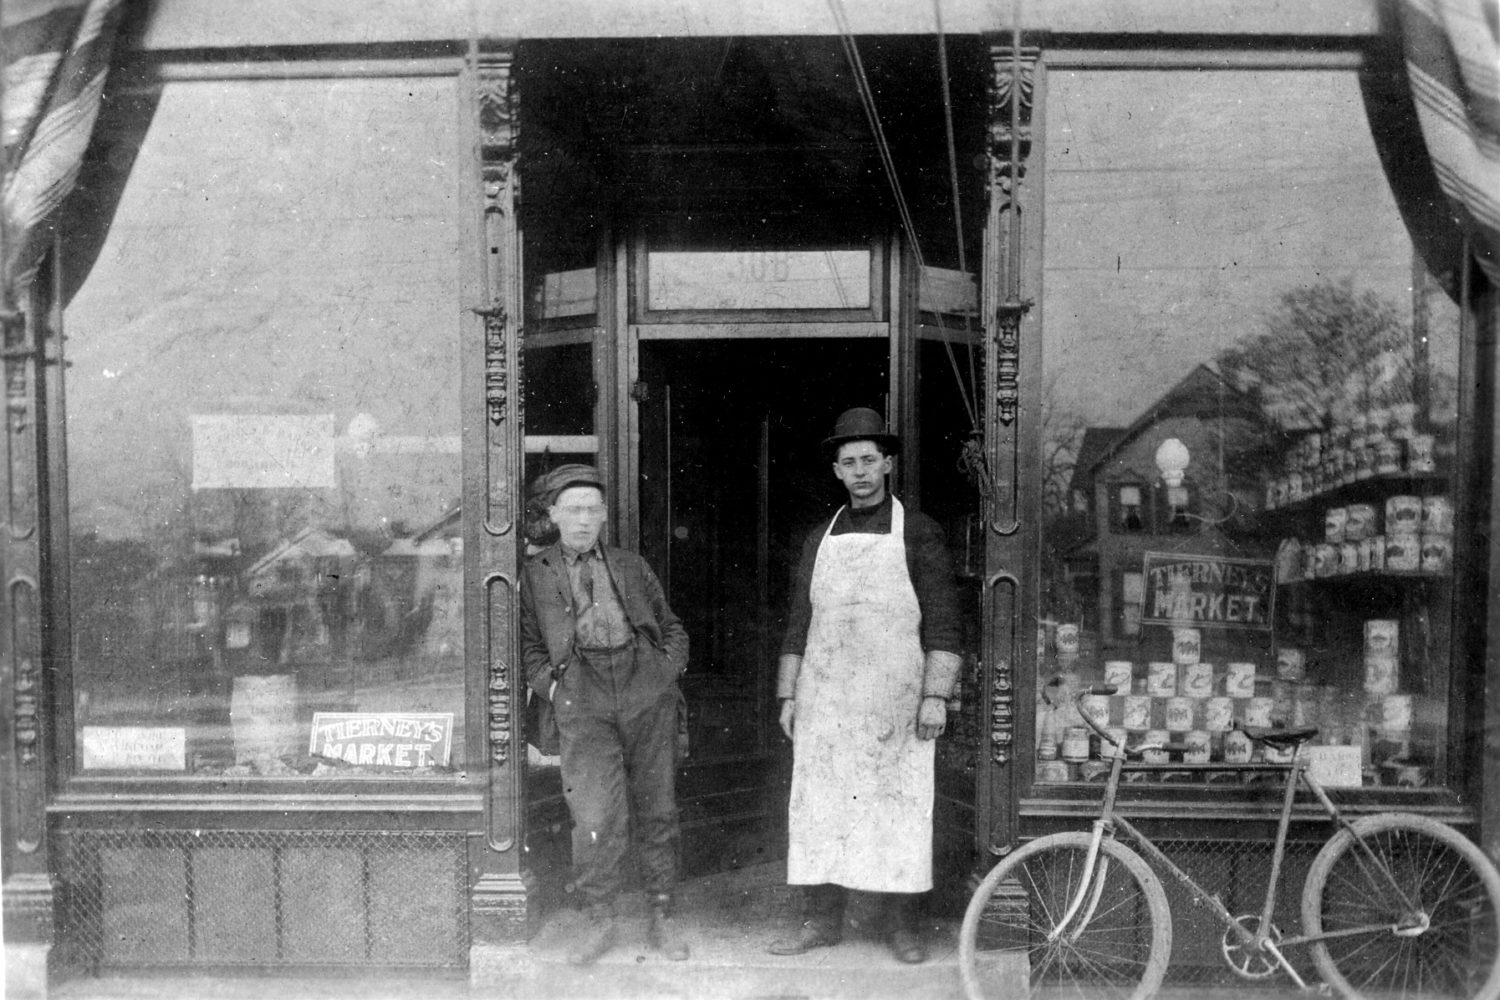 Raymond Tierney, on right, In front of Tierney Market 1906